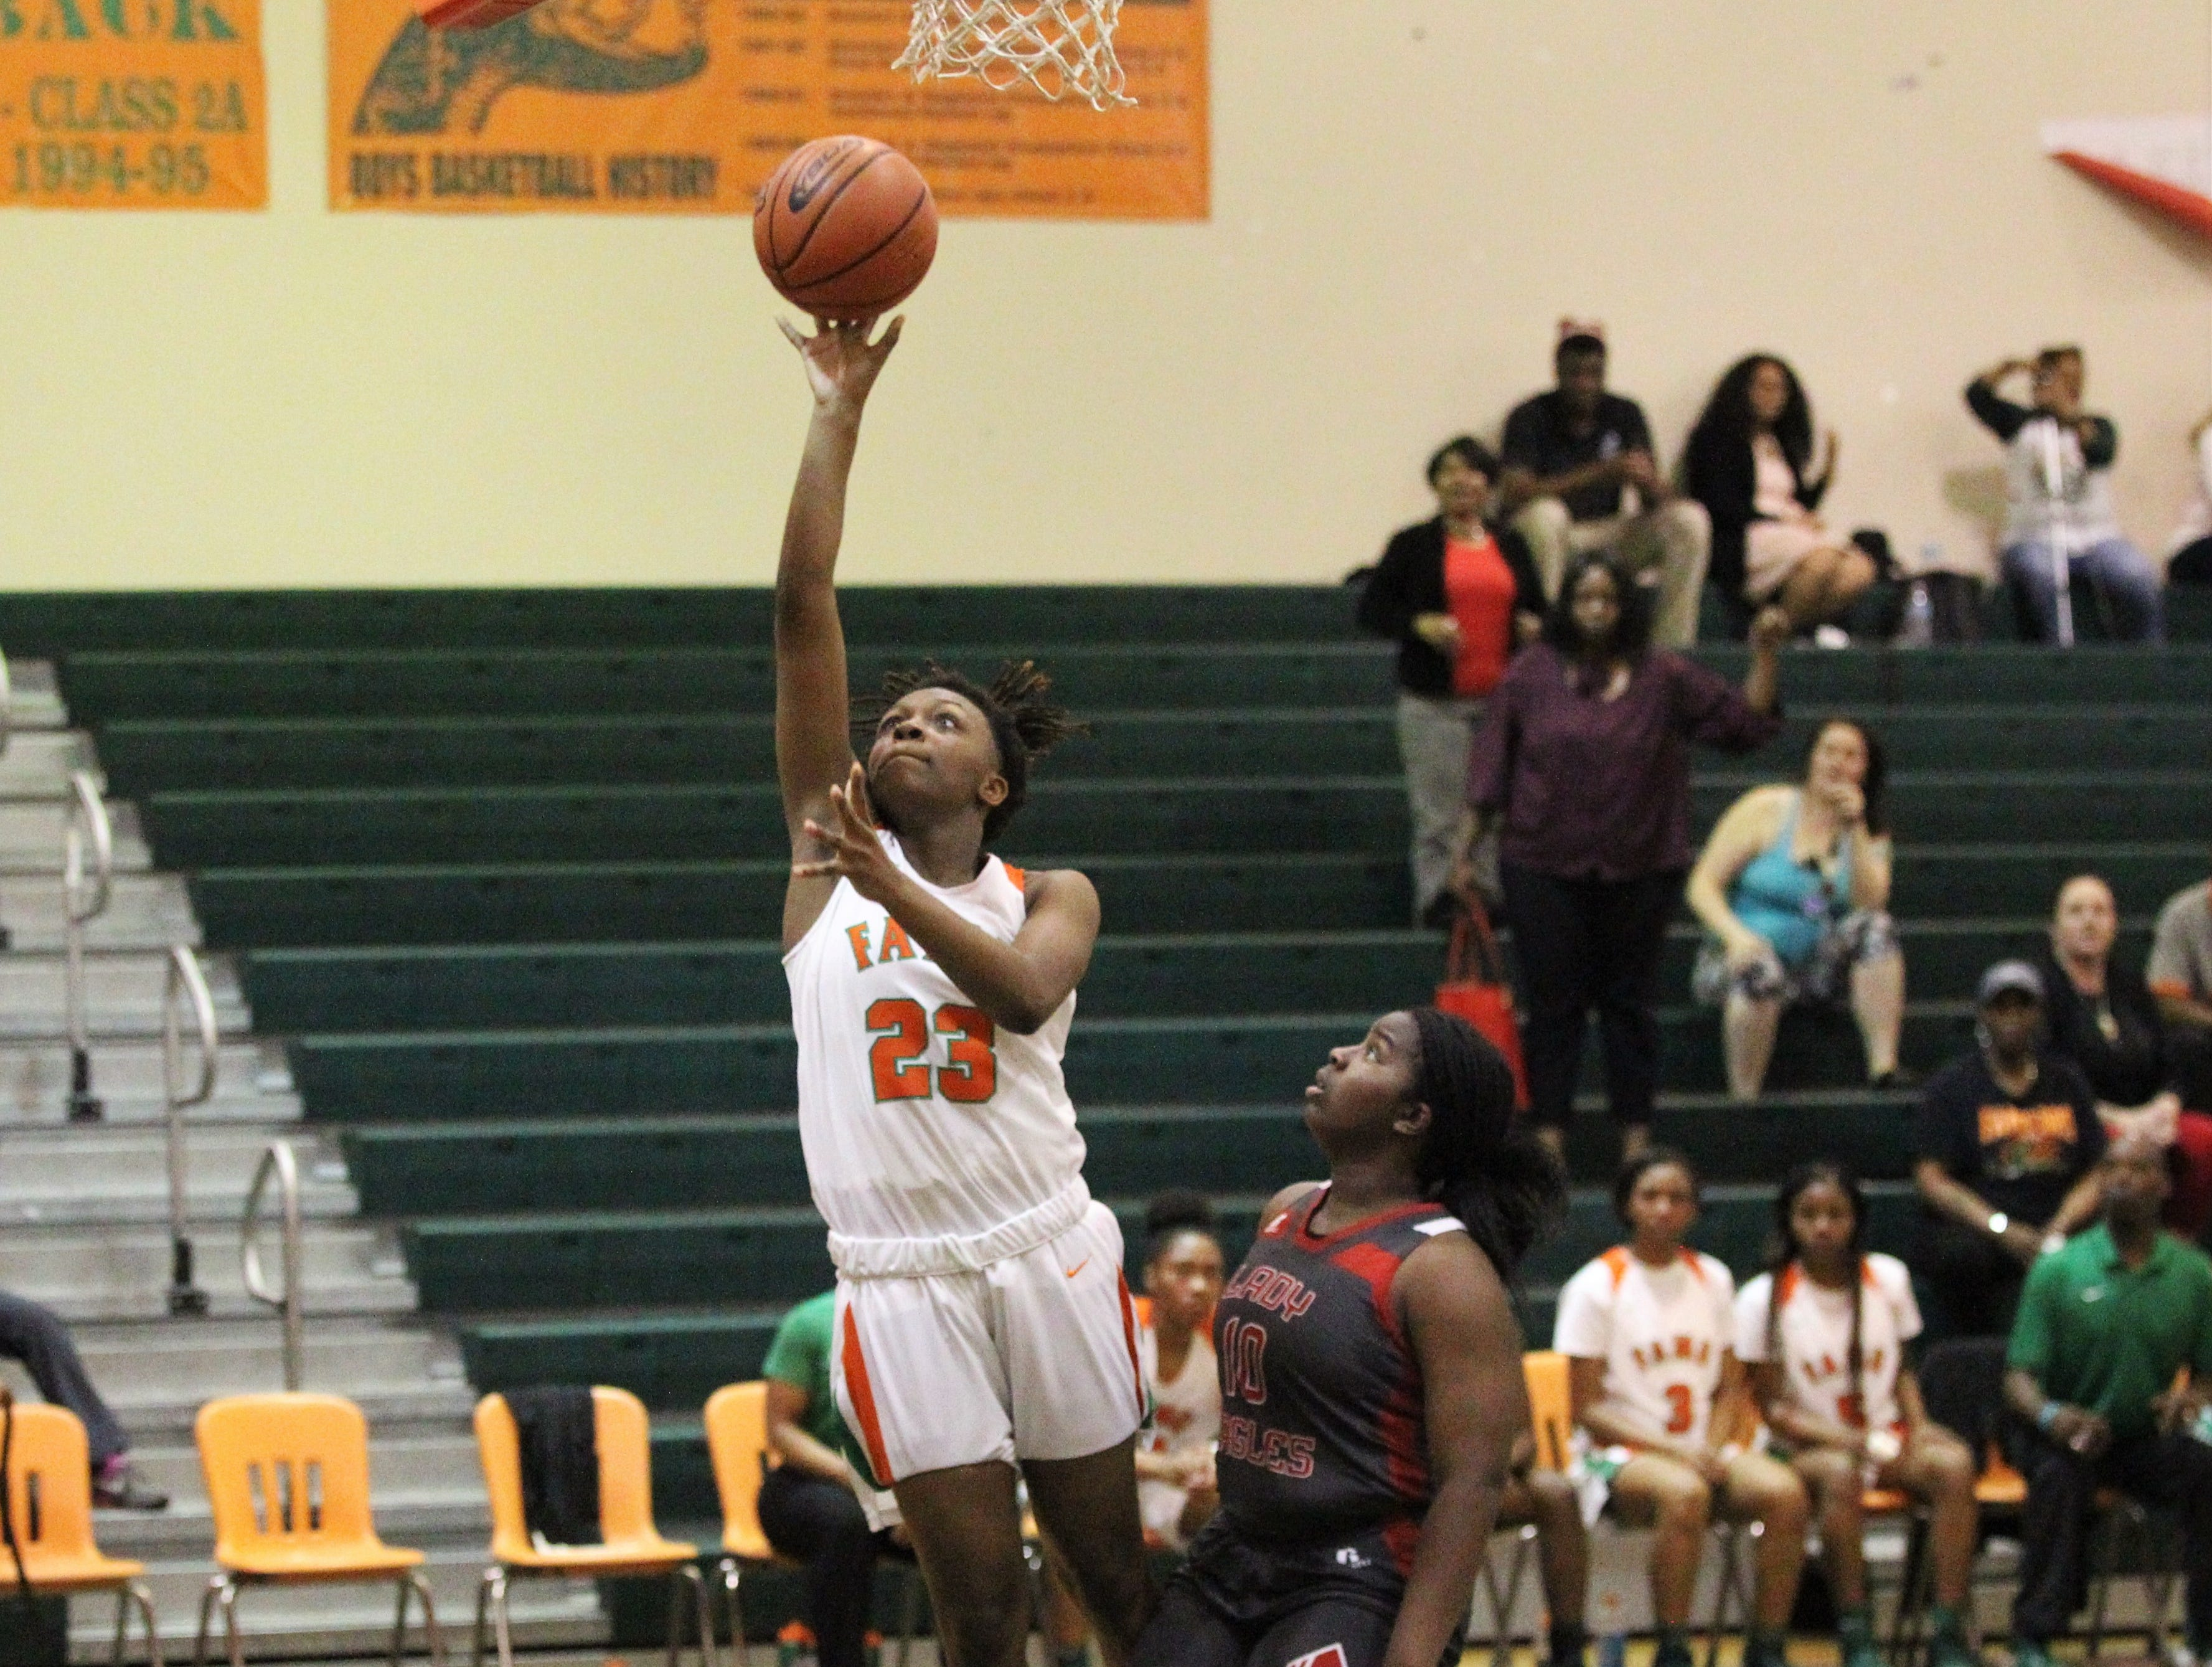 FAMU DRS senior Ayleshia Vickers goes up for a layup off a steal as FAMU DRS' girls basketball team beat NFC 59-41 for a District 1-3A title on Jan. 7, 2019.